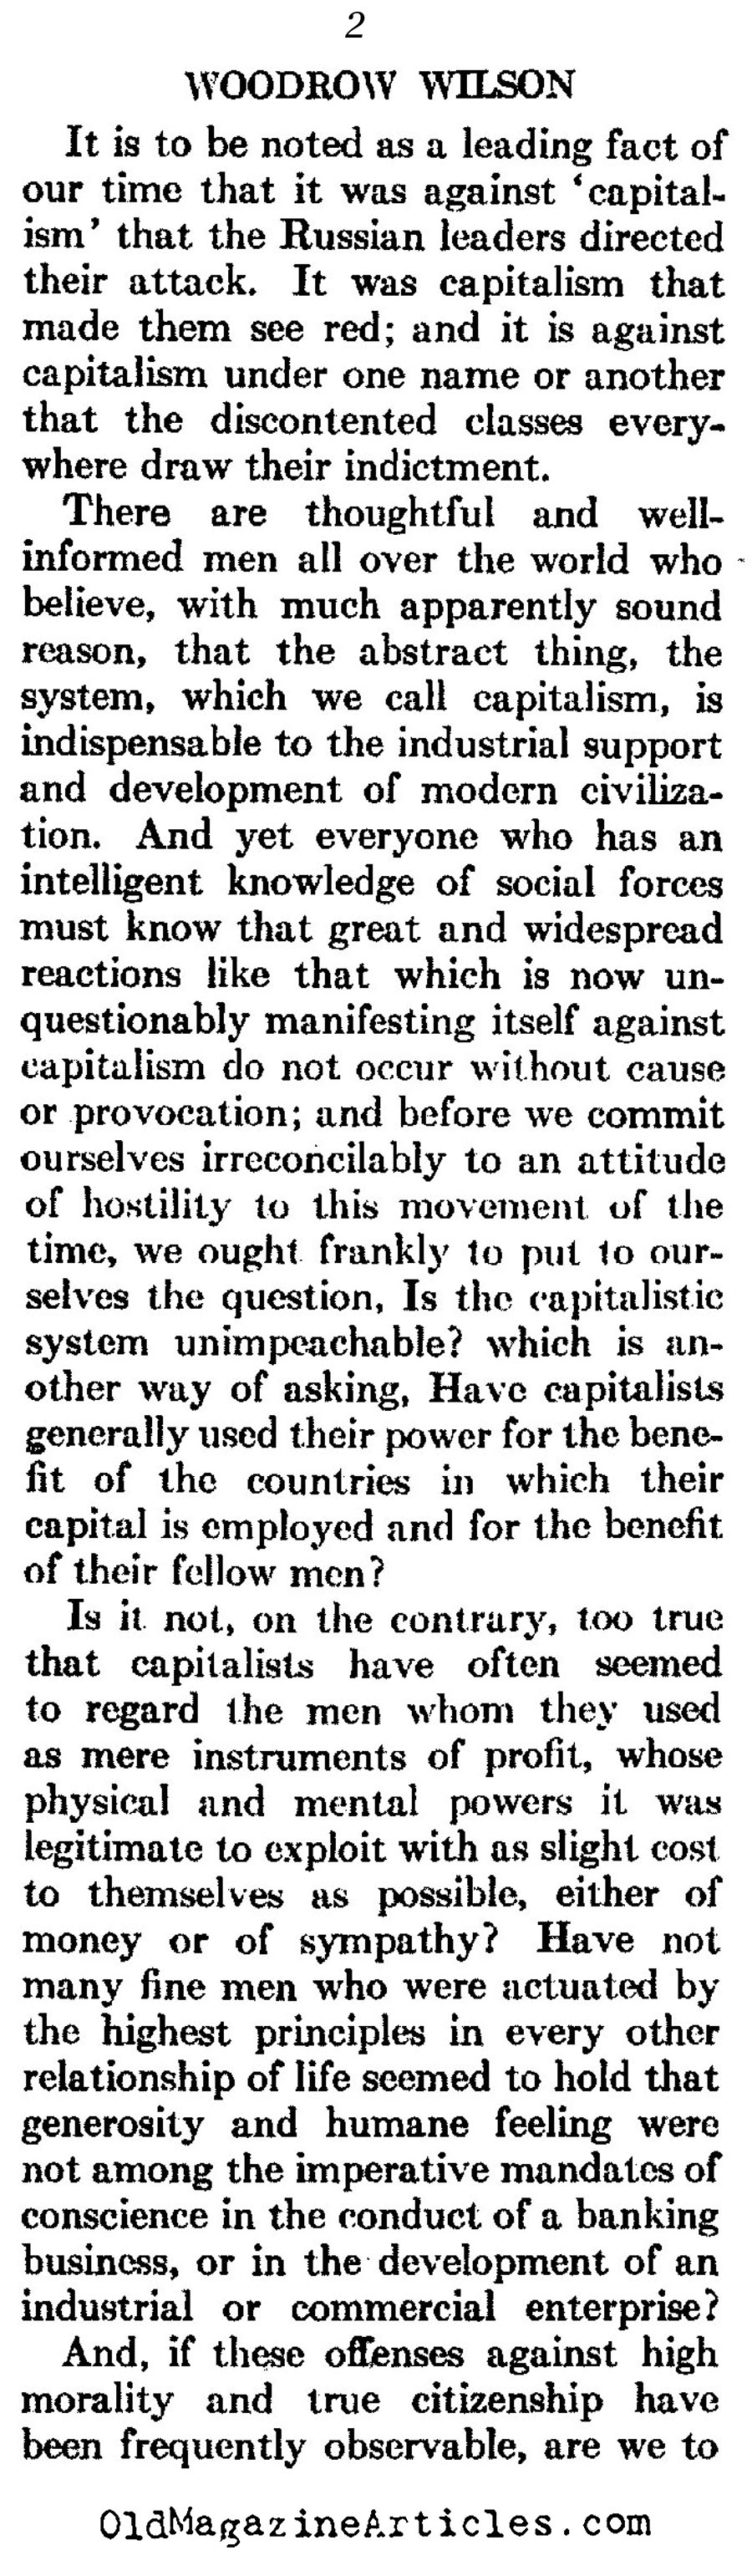 woodrow wilson response to the 1917 russian revolution woodrow woodrow wilson on the russian revolution and the red scare atlantic monthly 1923